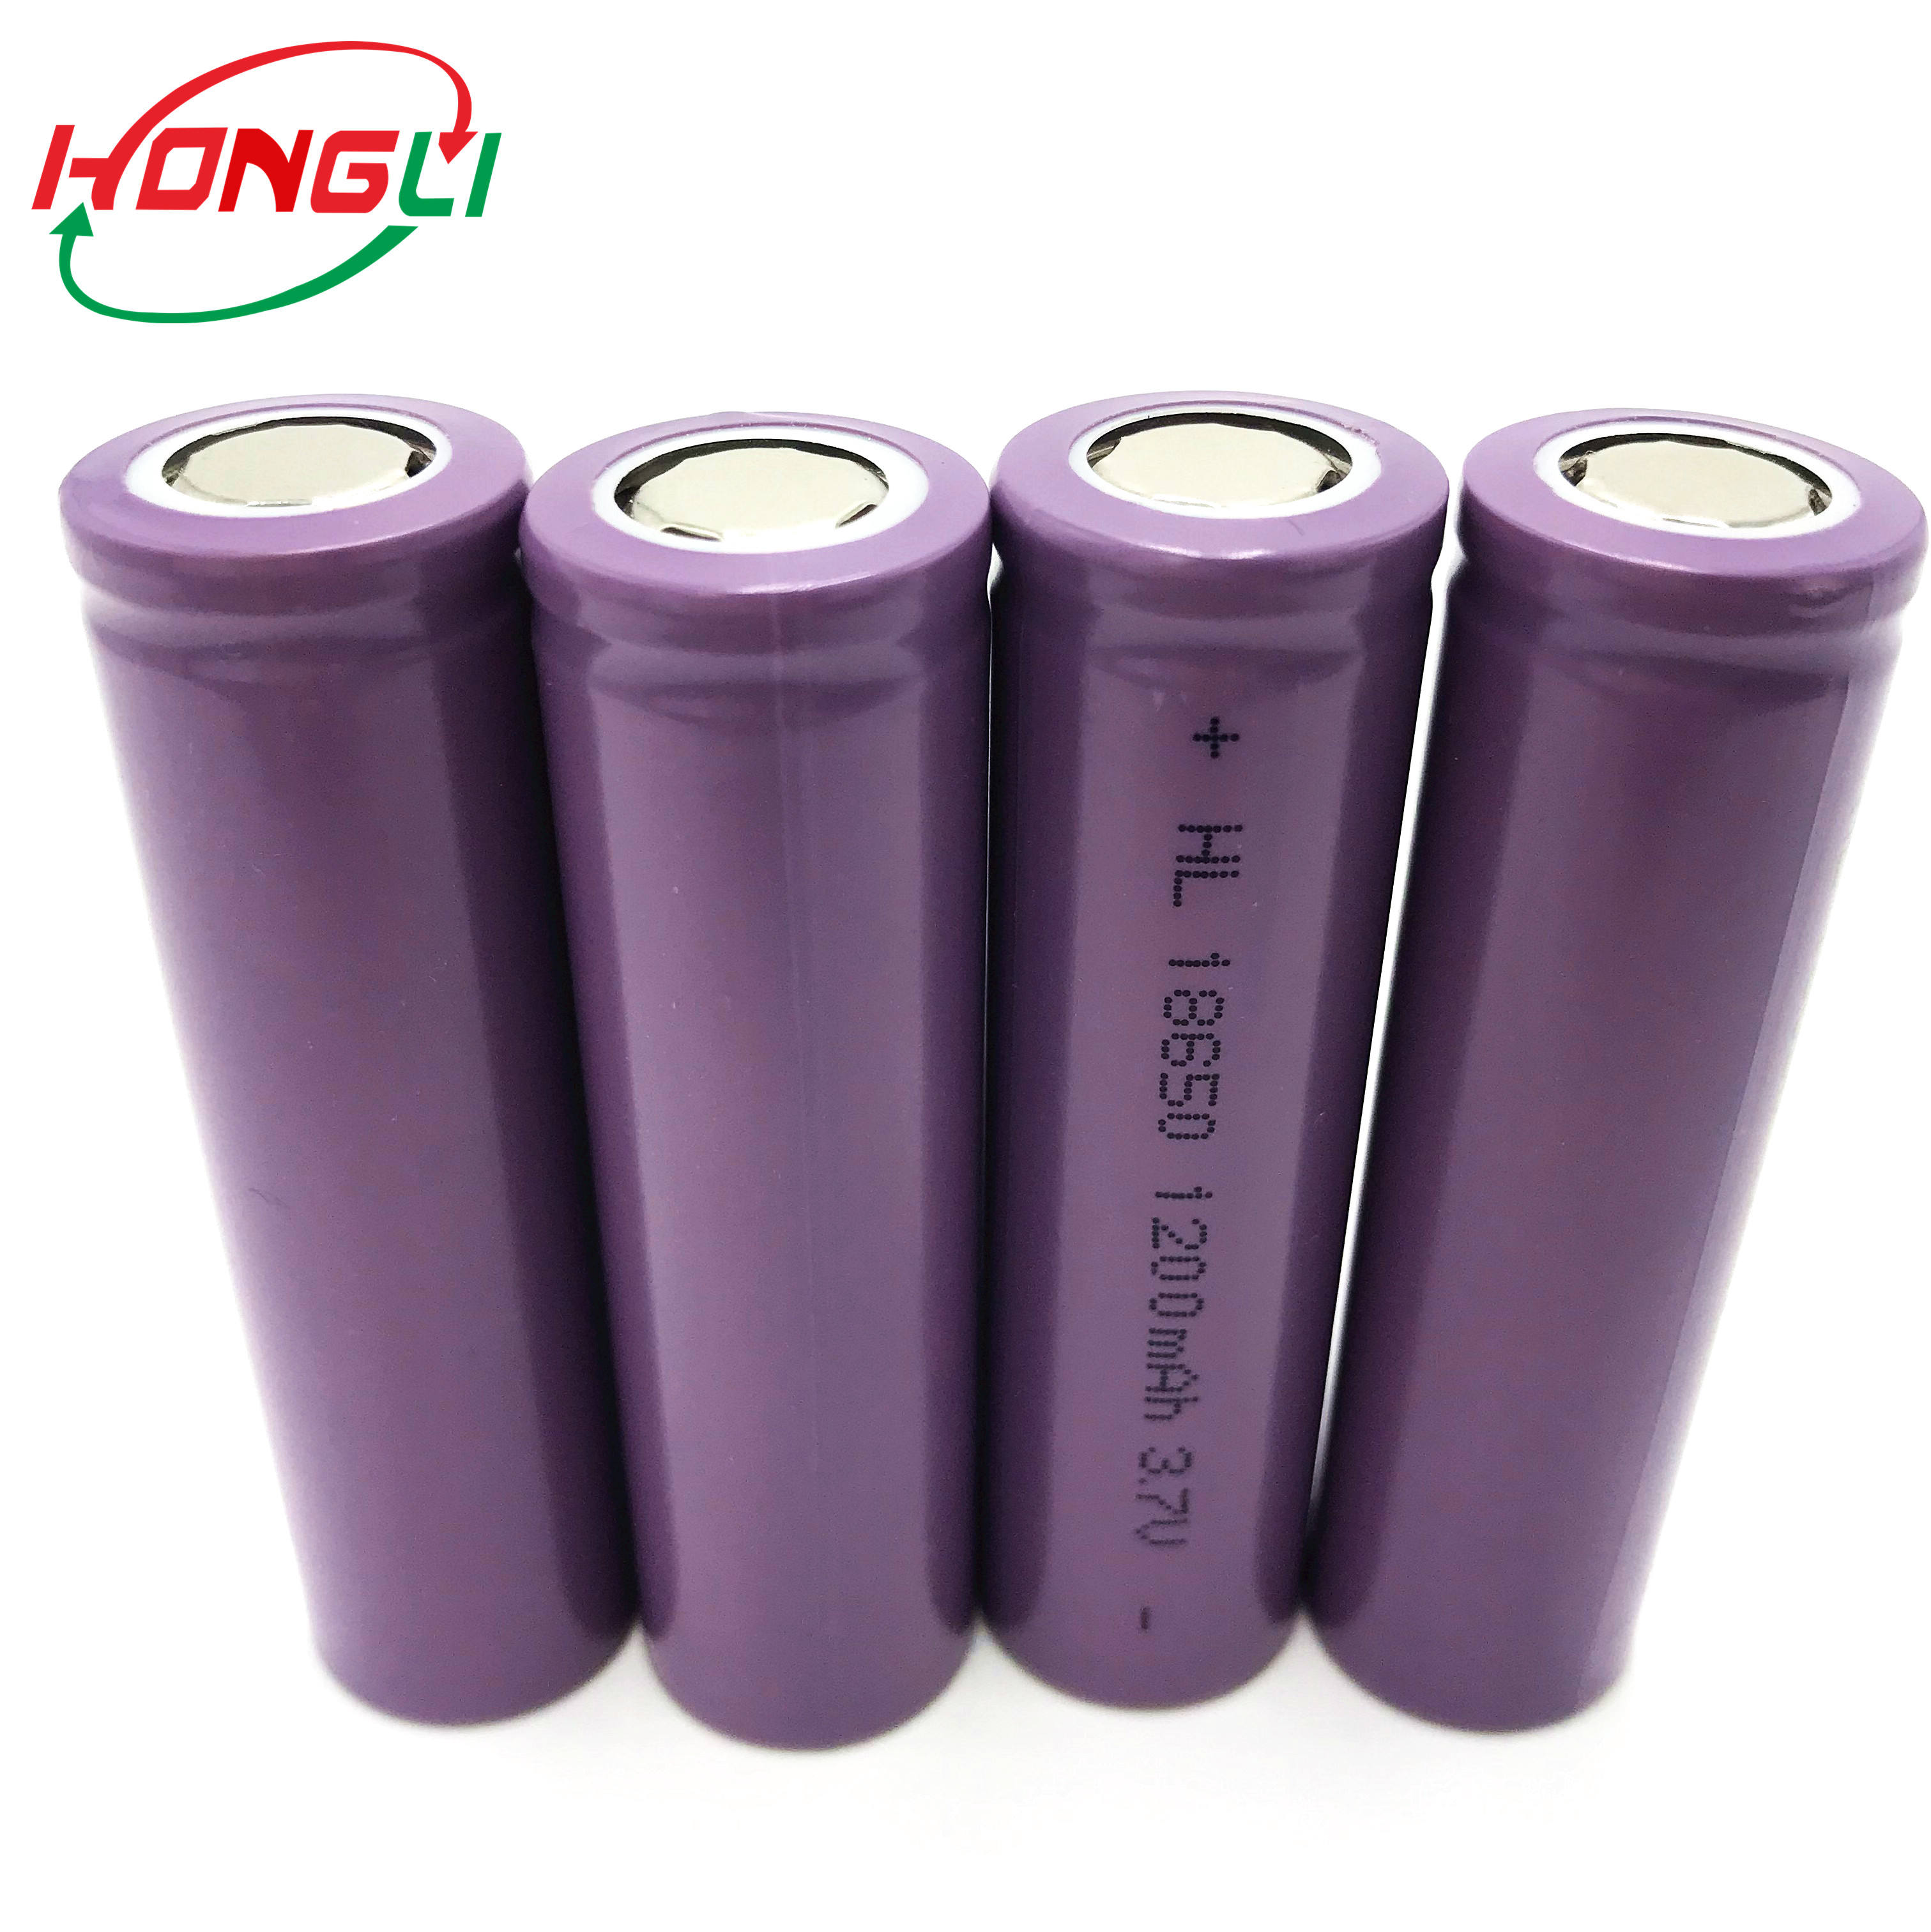 hongli branch 18650 li-ion battery cell lithium battery 18650